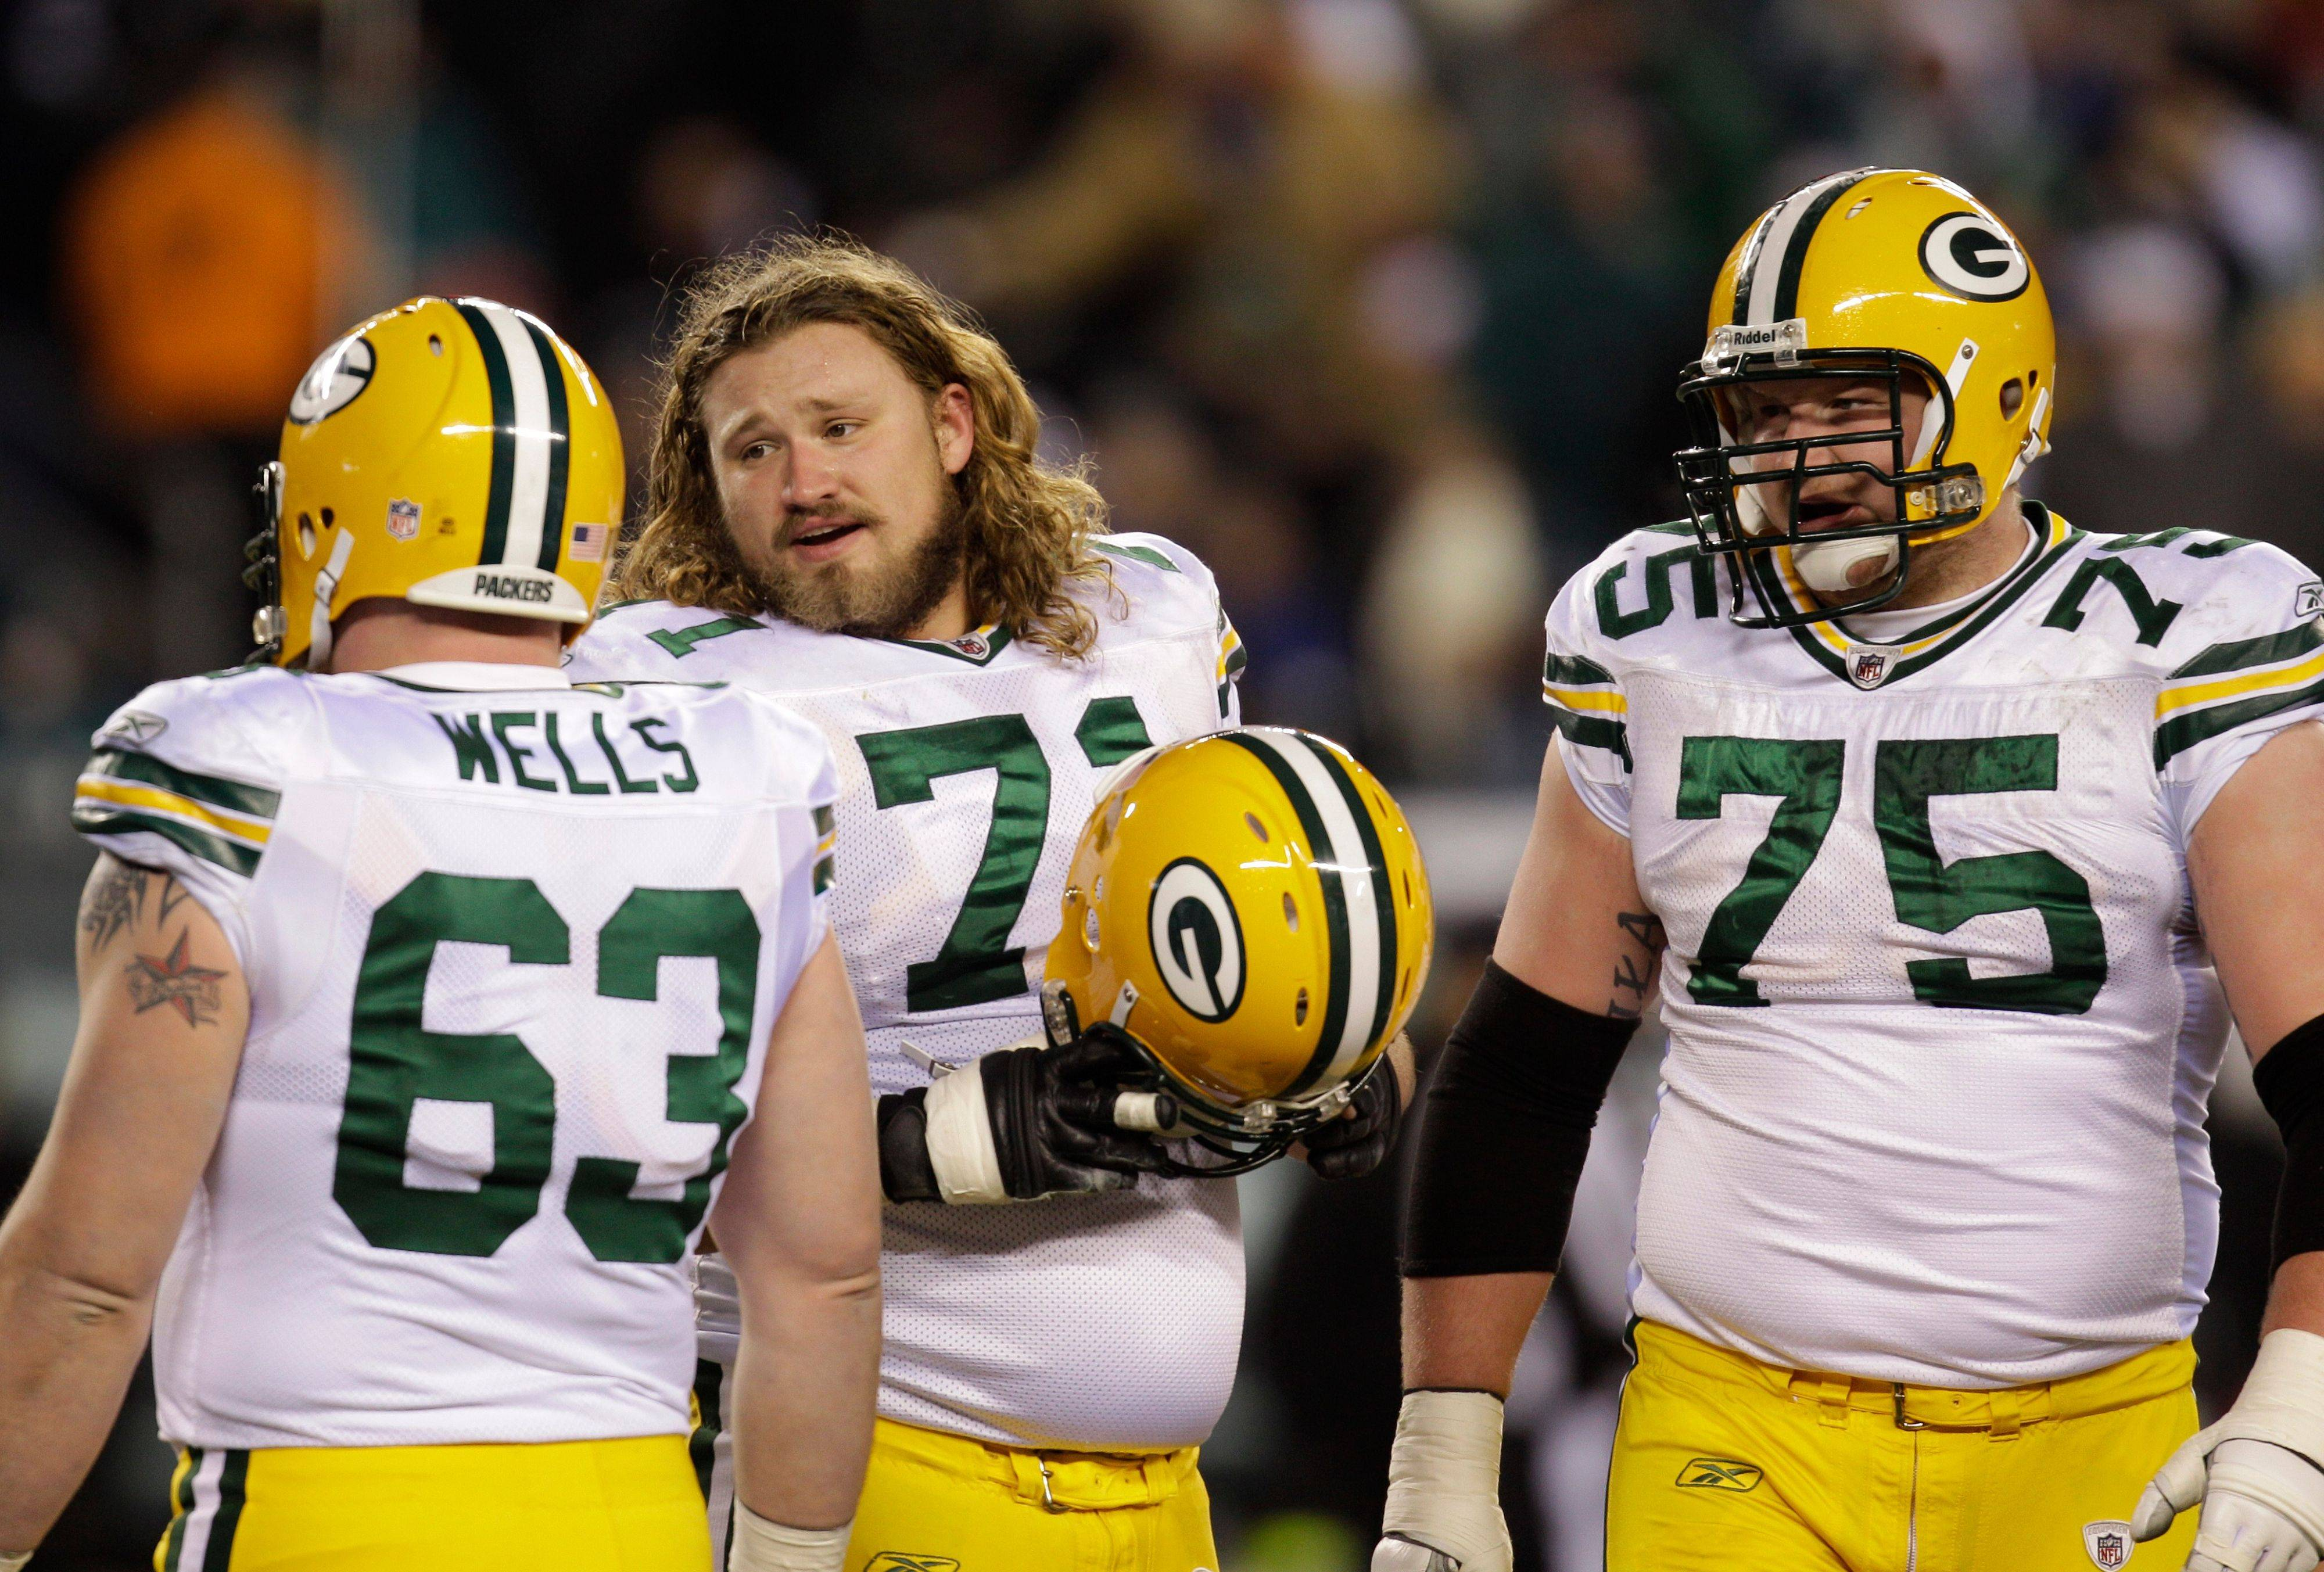 Green Bay Packers center Scott Wells (63) talks with teammates Josh Sitton, center, and Bryan Bulaga (75) during their NFL playoff game against the Philadelphia Eagles in Philadelphia. Bulaga, a rookie first-round pick at offensive tackle, was born in Barrington and grew up in Crystal Lake.